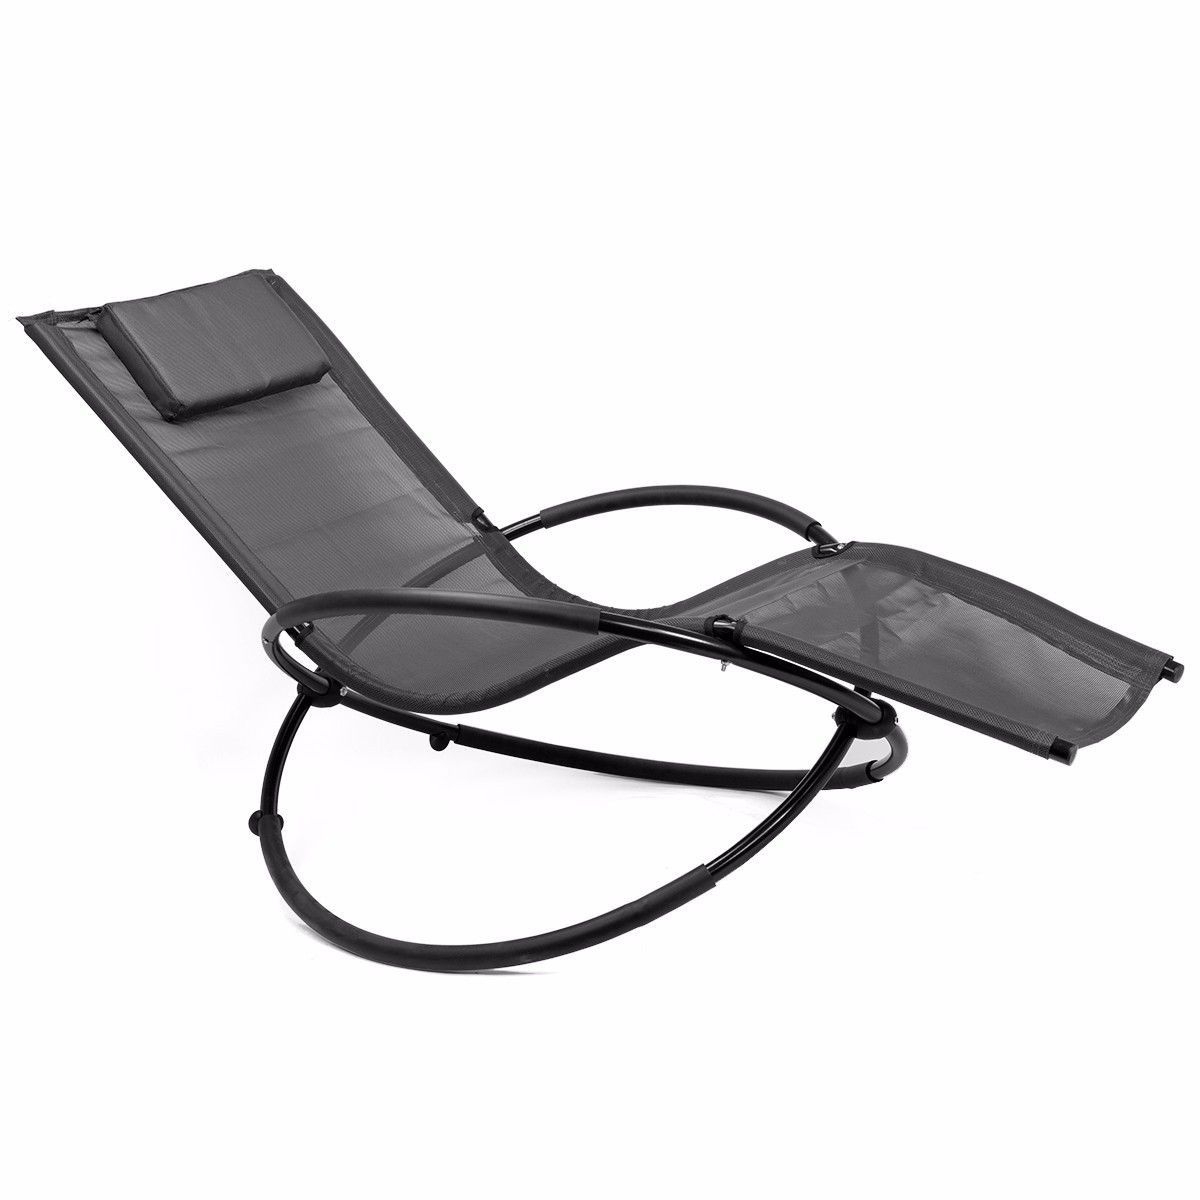 Orbital Patio Lounger Rocking Chairs Pertaining To Preferred Details About Outdoor Folding Orbit Zero Gravity Chair Patio Garden Lounger  Rocking Relax Grey (View 15 of 25)